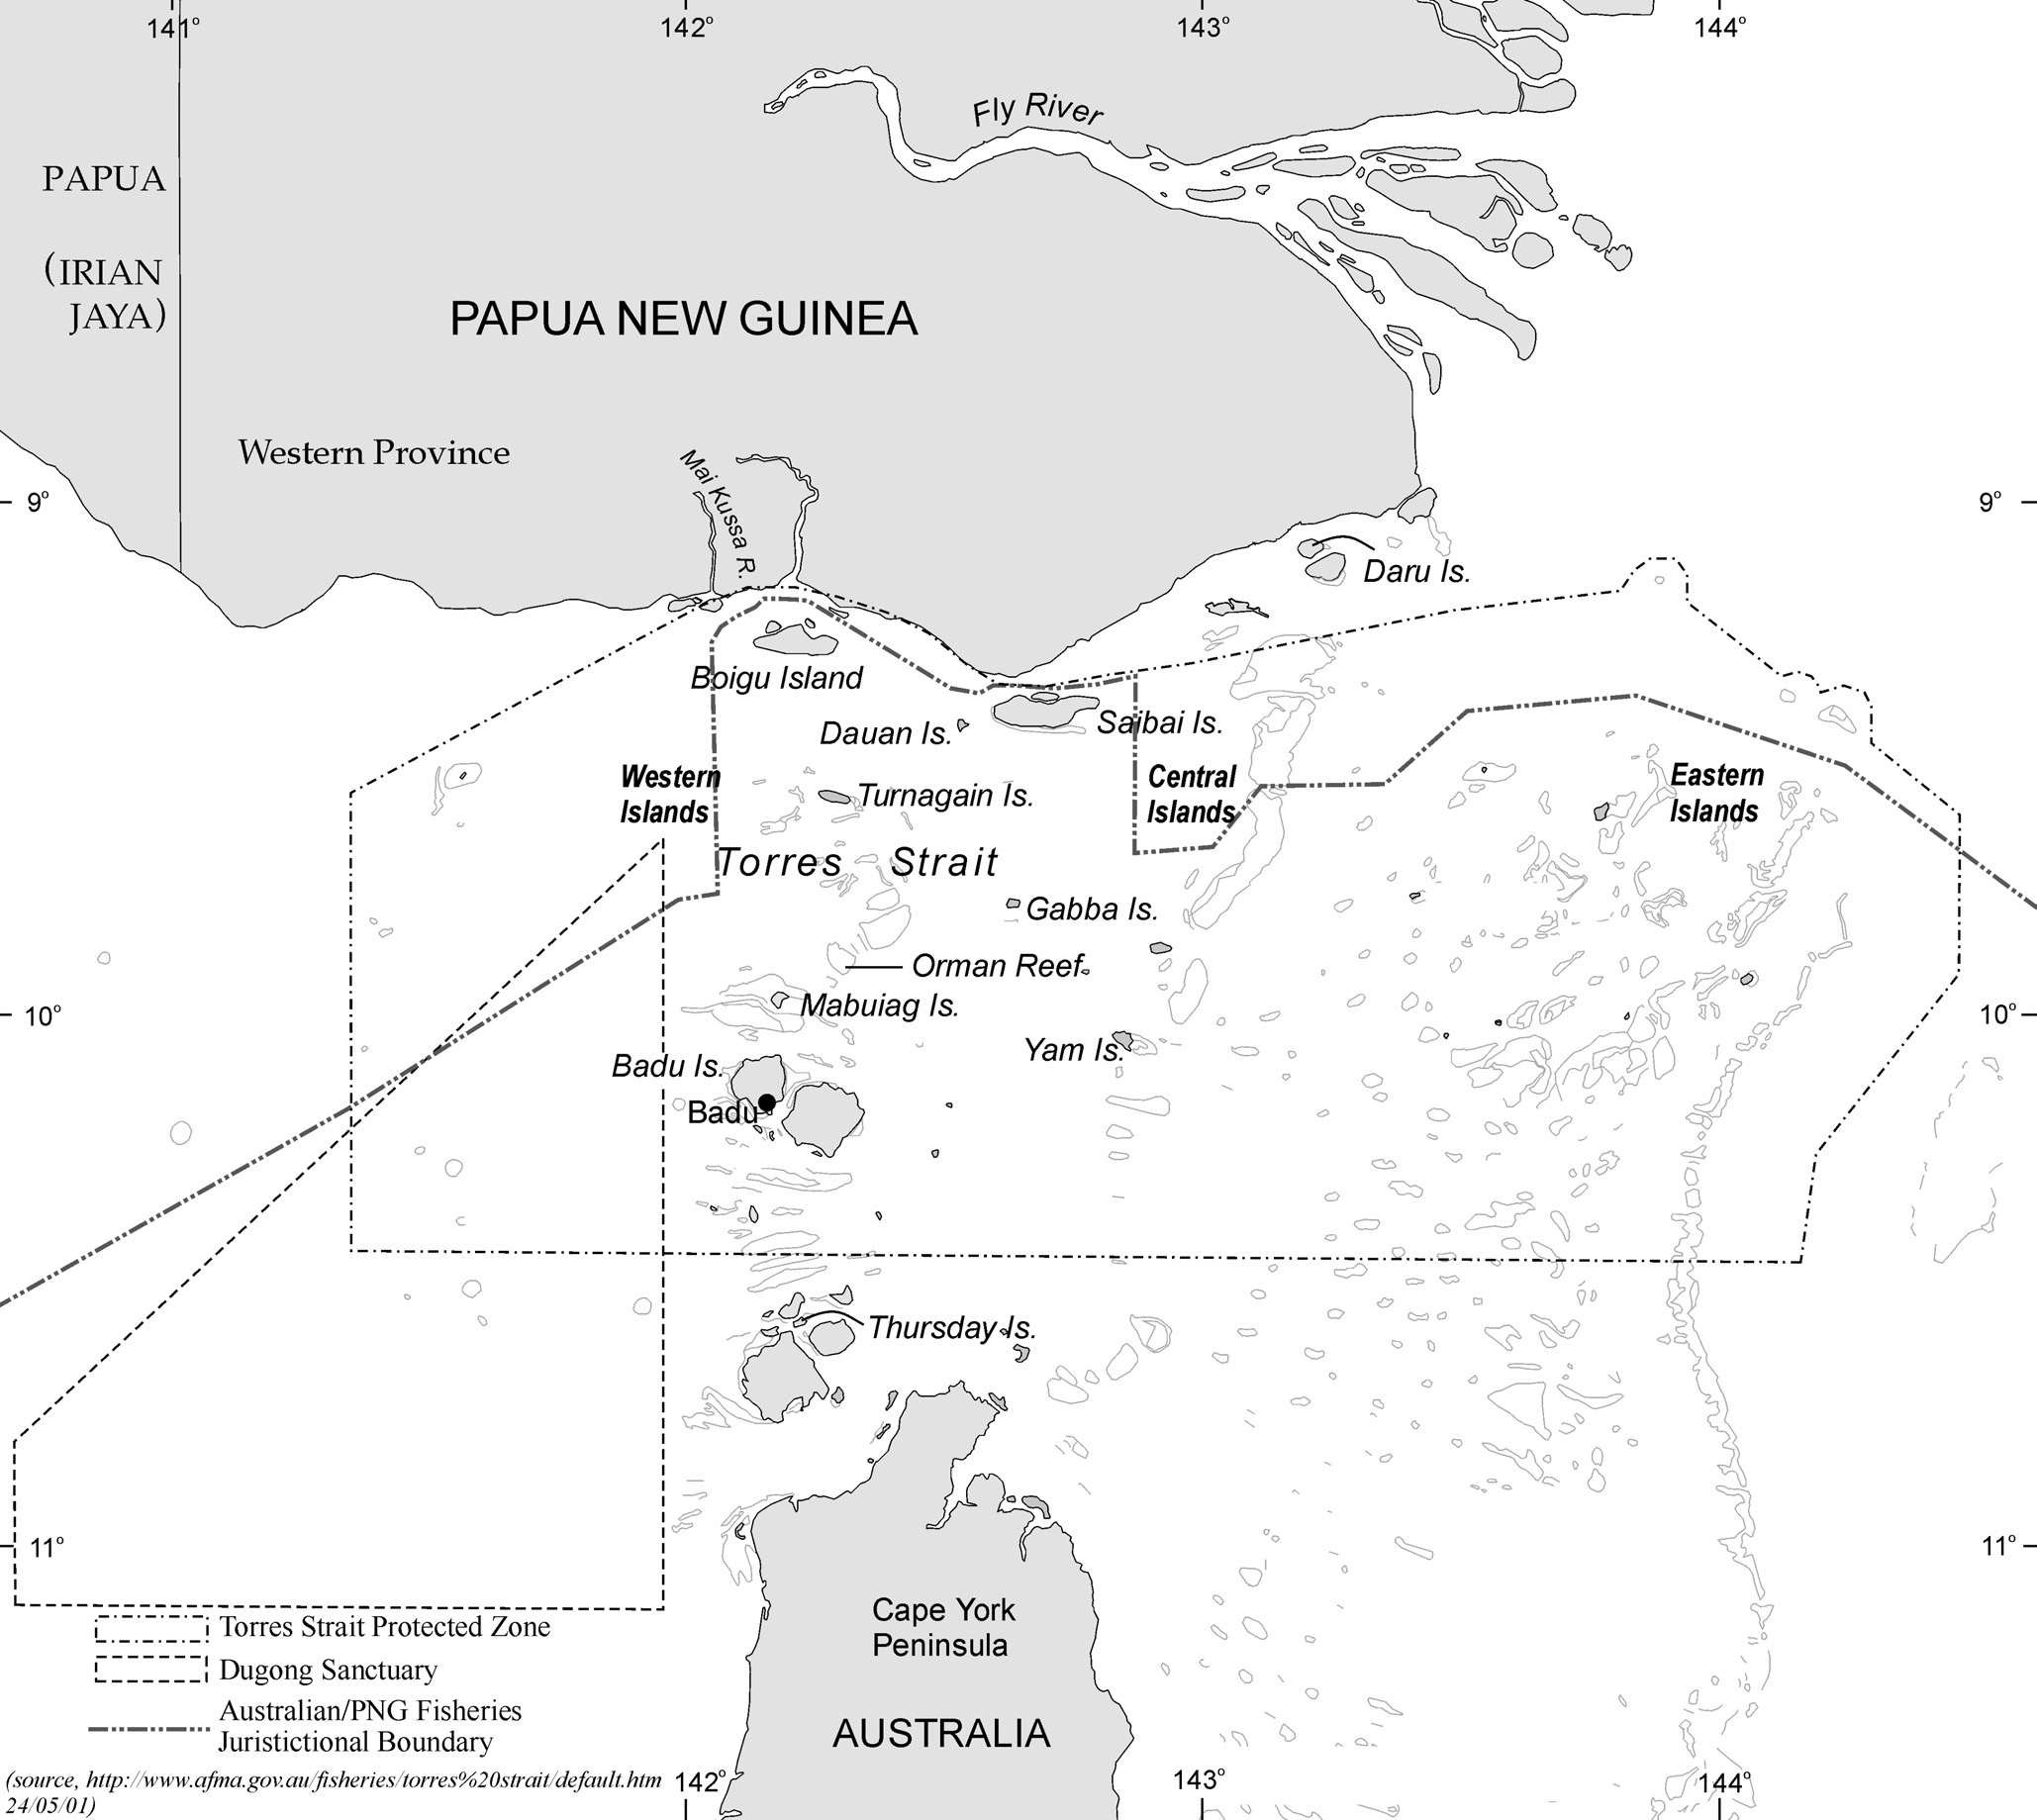 Figure 6.4 Torres Strait showing place names and legal boundaries mentioned in the text. Some scientists have disputed this conclusion (see Johannes & MacFarlane 1991).